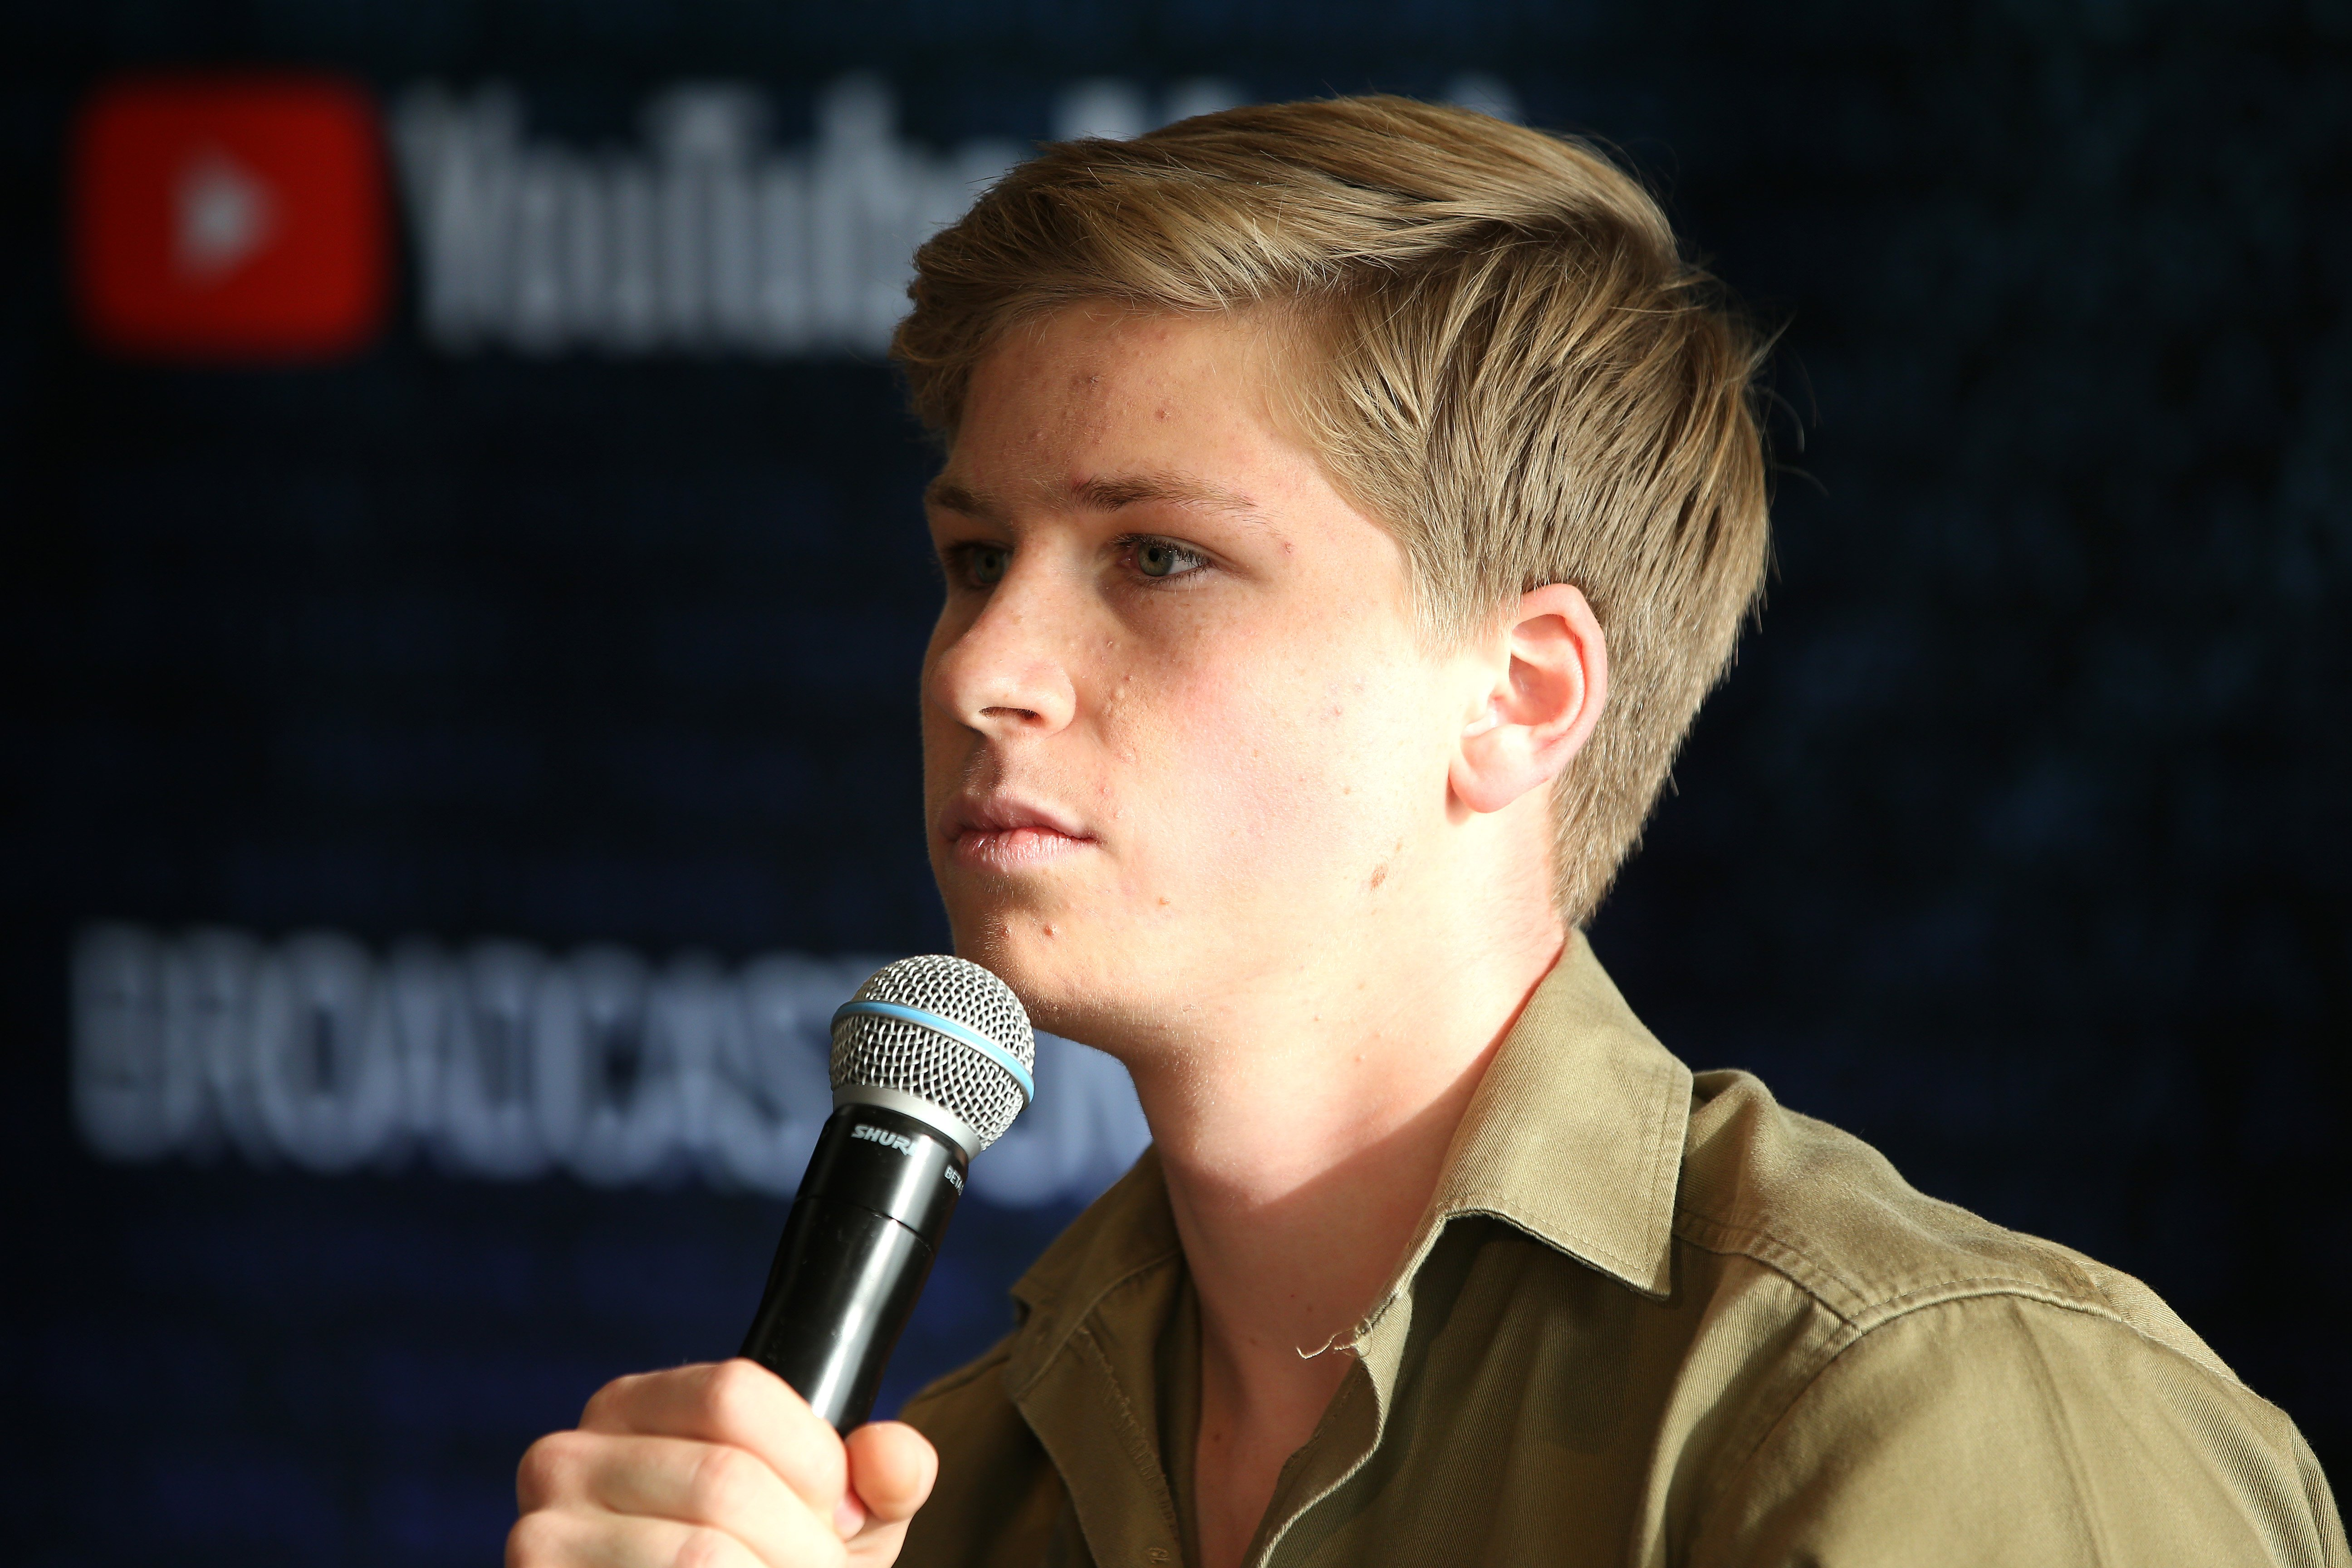 Robert Irwin talks to the media in the awards room during the 33rd Annual ARIA Awards 2019 at The Star on November 27, 2019 in Sydney, Australia   Photo: Getty Images